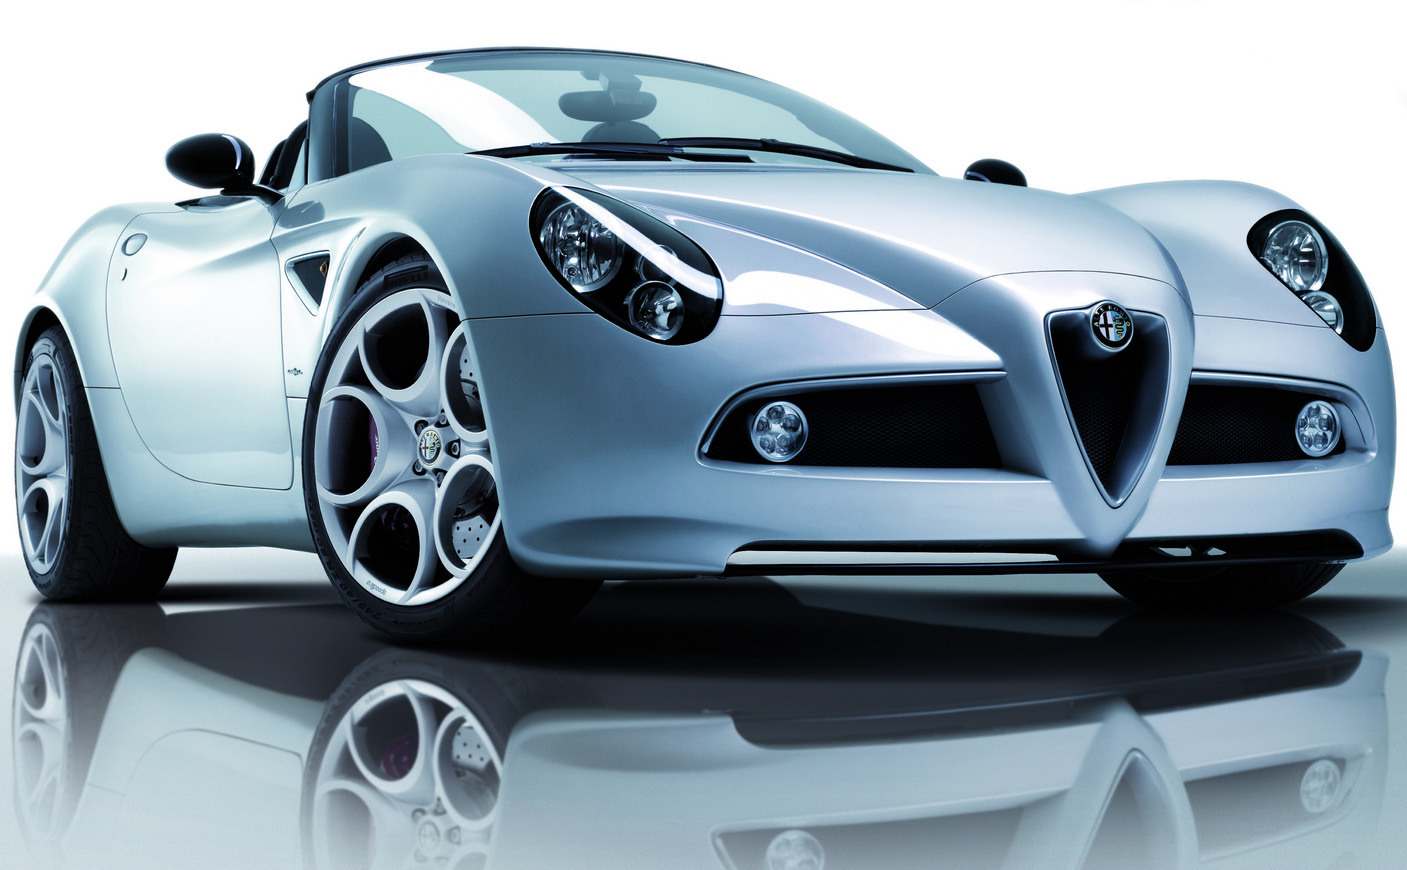 Alfa Romeo 8c Spider Car Pictures High Resolution Image Wallpapers Download Wallpaper